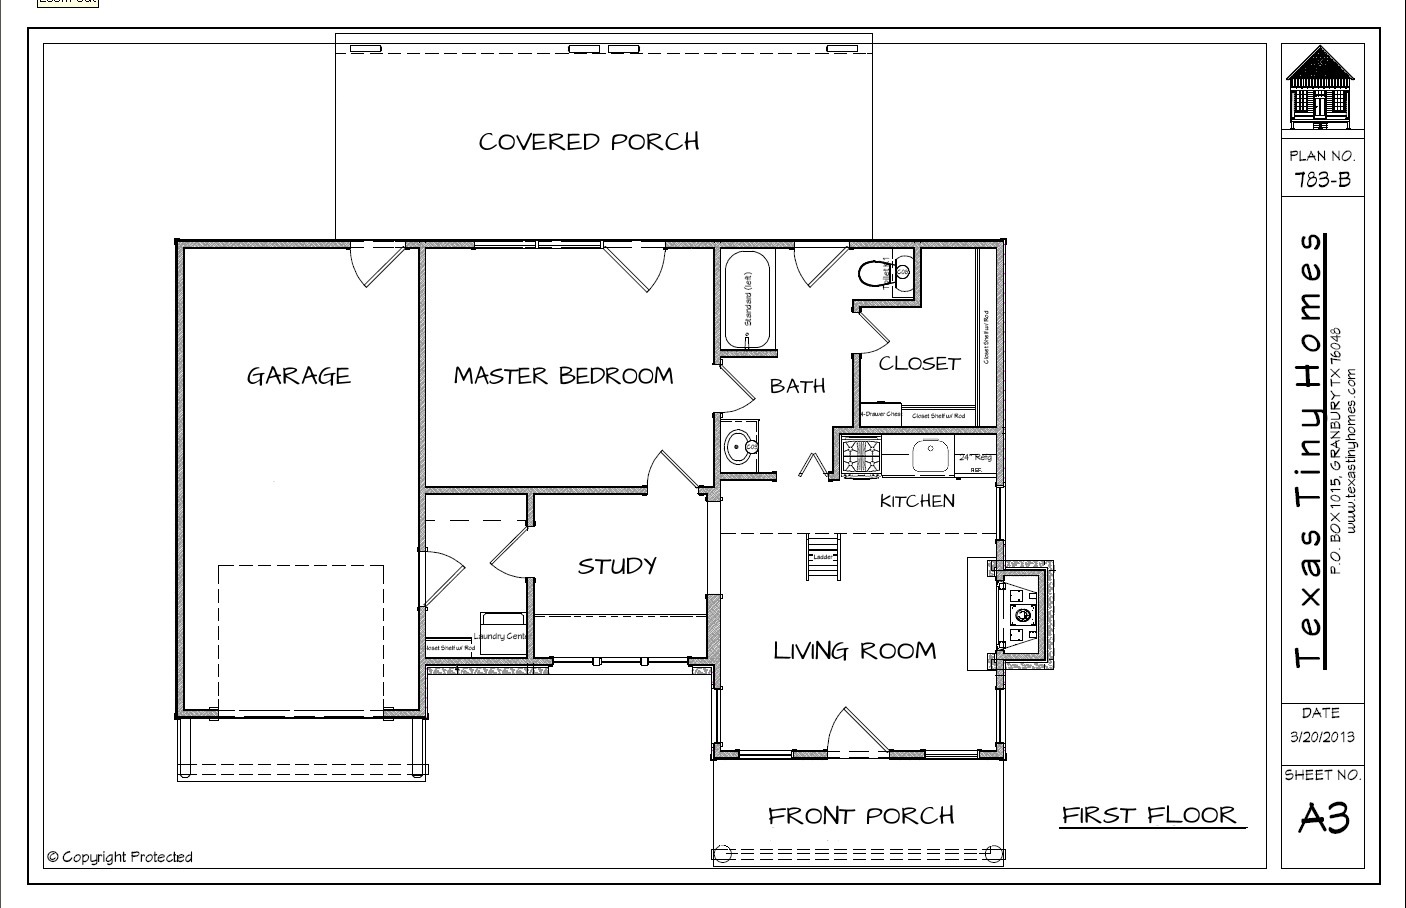 Awesome house plans for small homes 4 small home plan for Little house blueprints